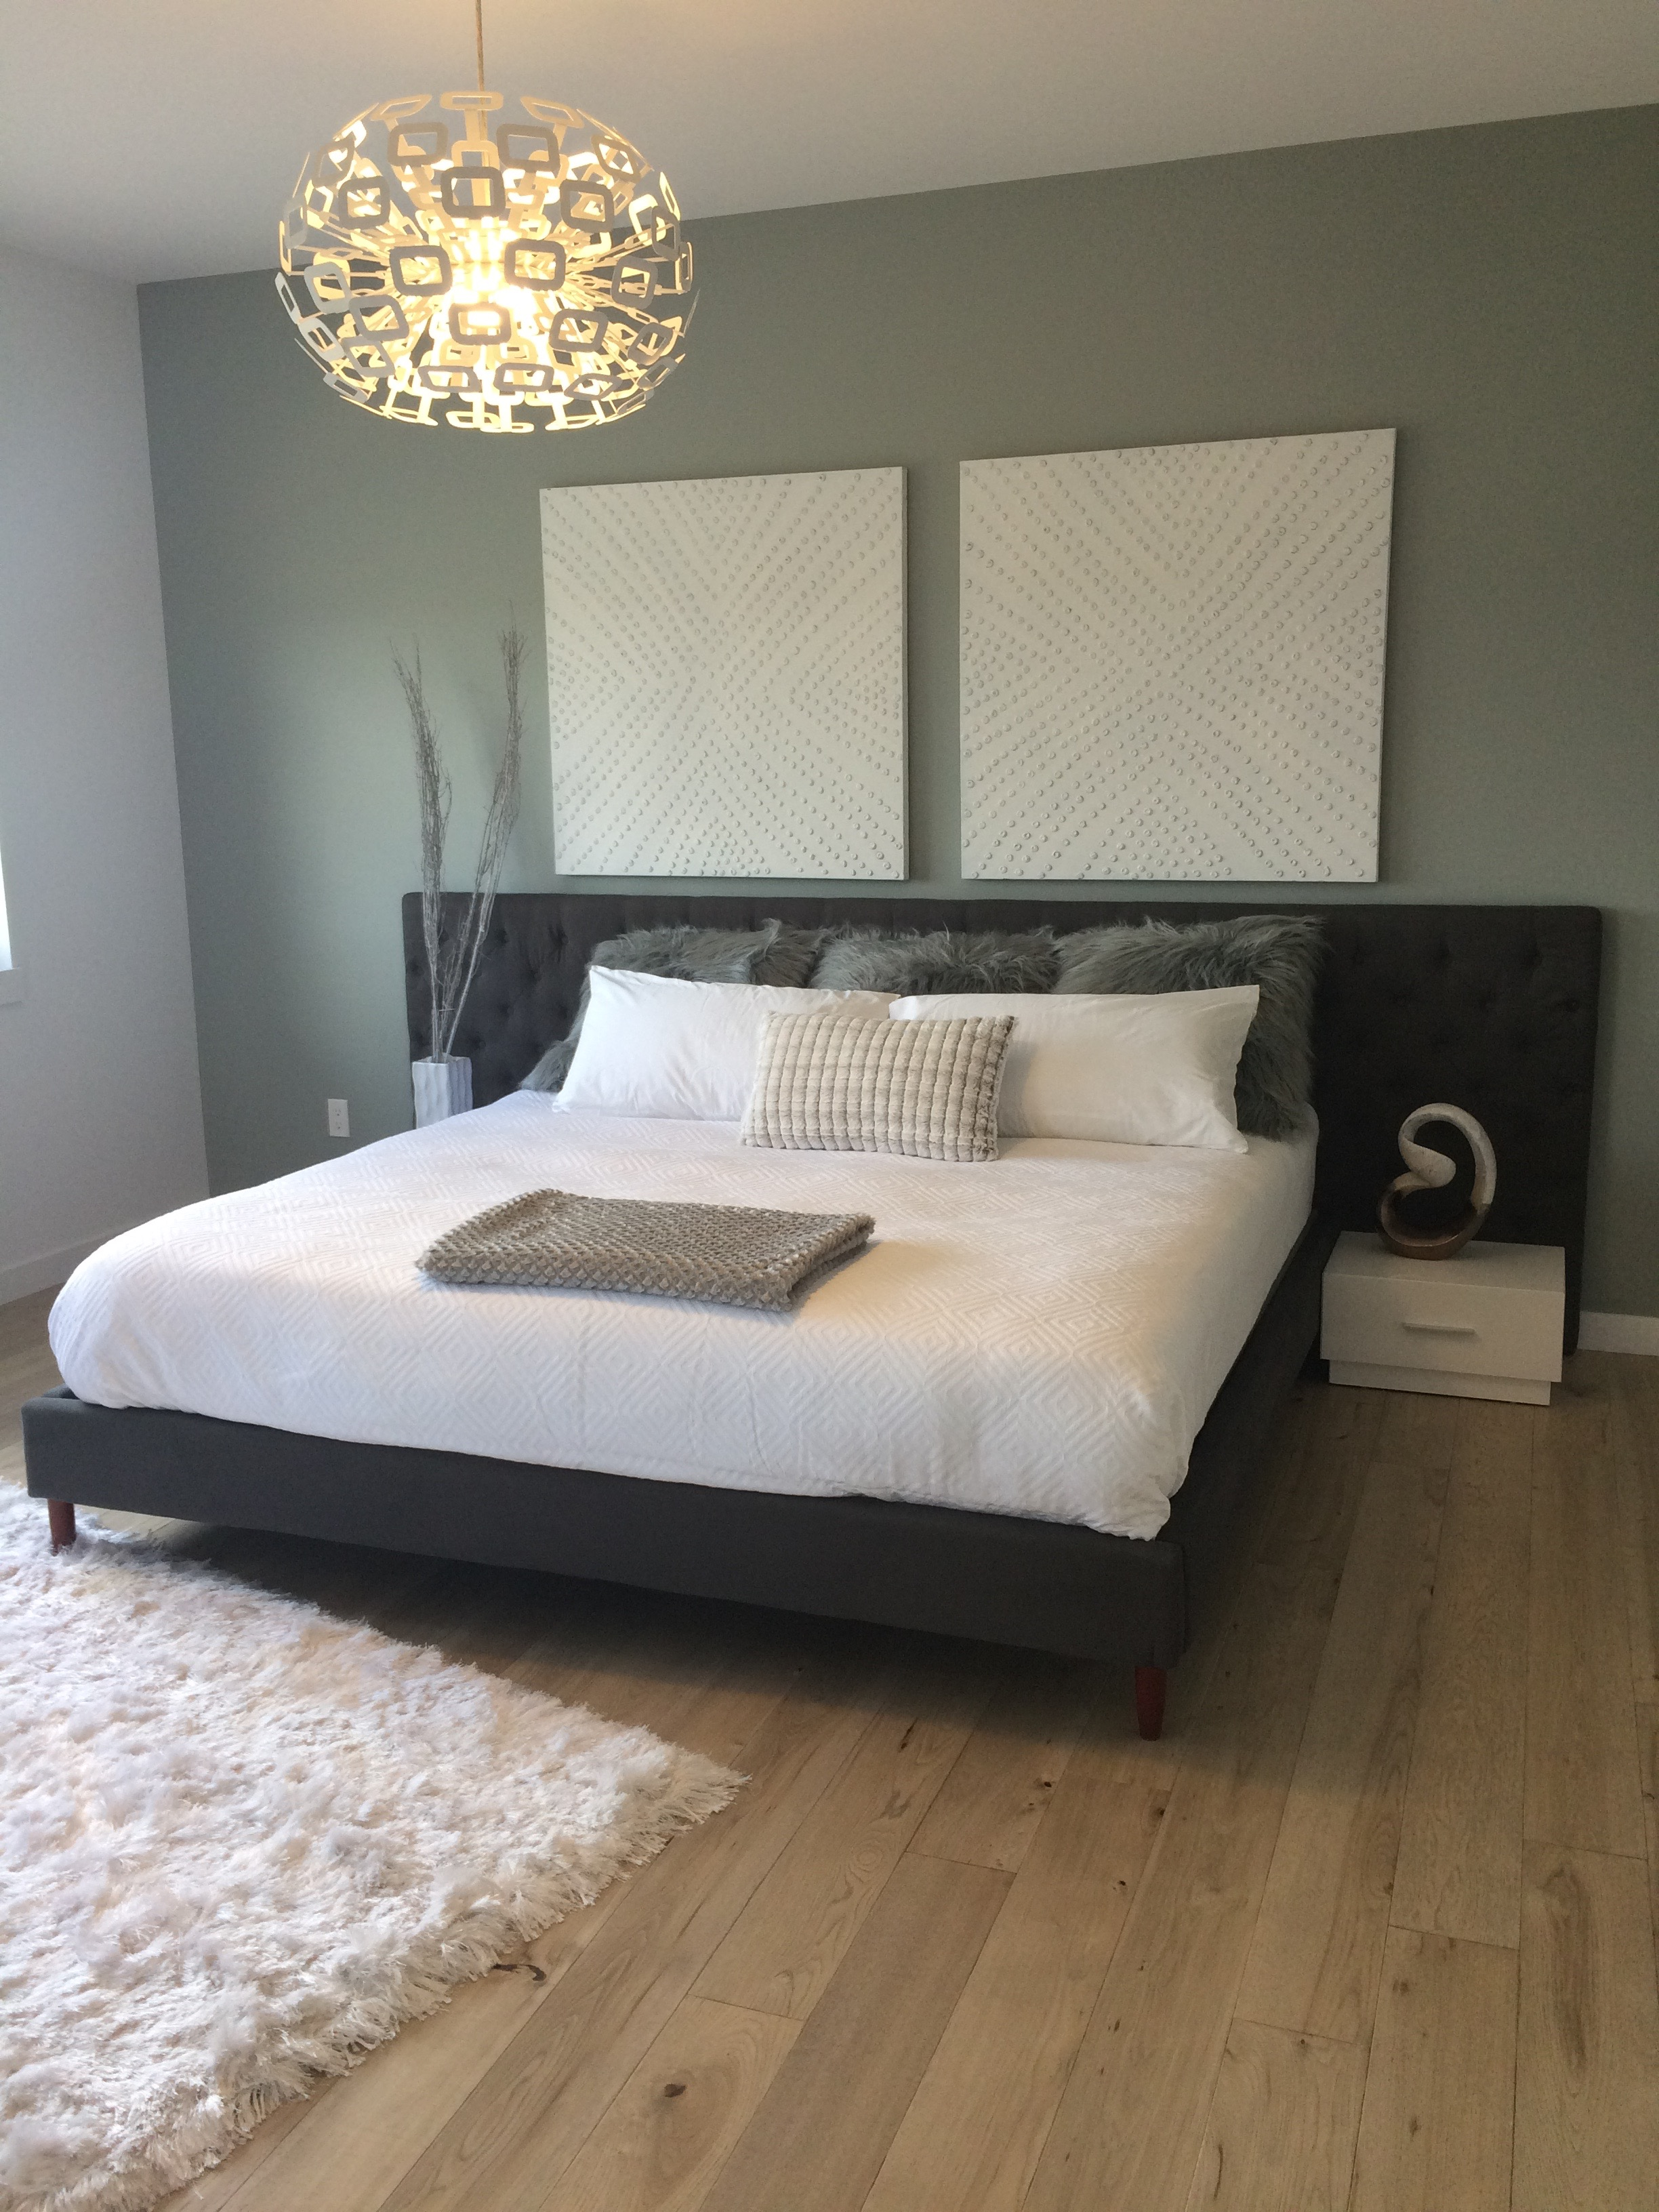 MCM Tufted bed. Blue Moon FUrniture.Mario platform bed. Blue Moon Furniture. Artista Show Home Furniture. Winnipeg parade of homes 2017 furniture.jpg